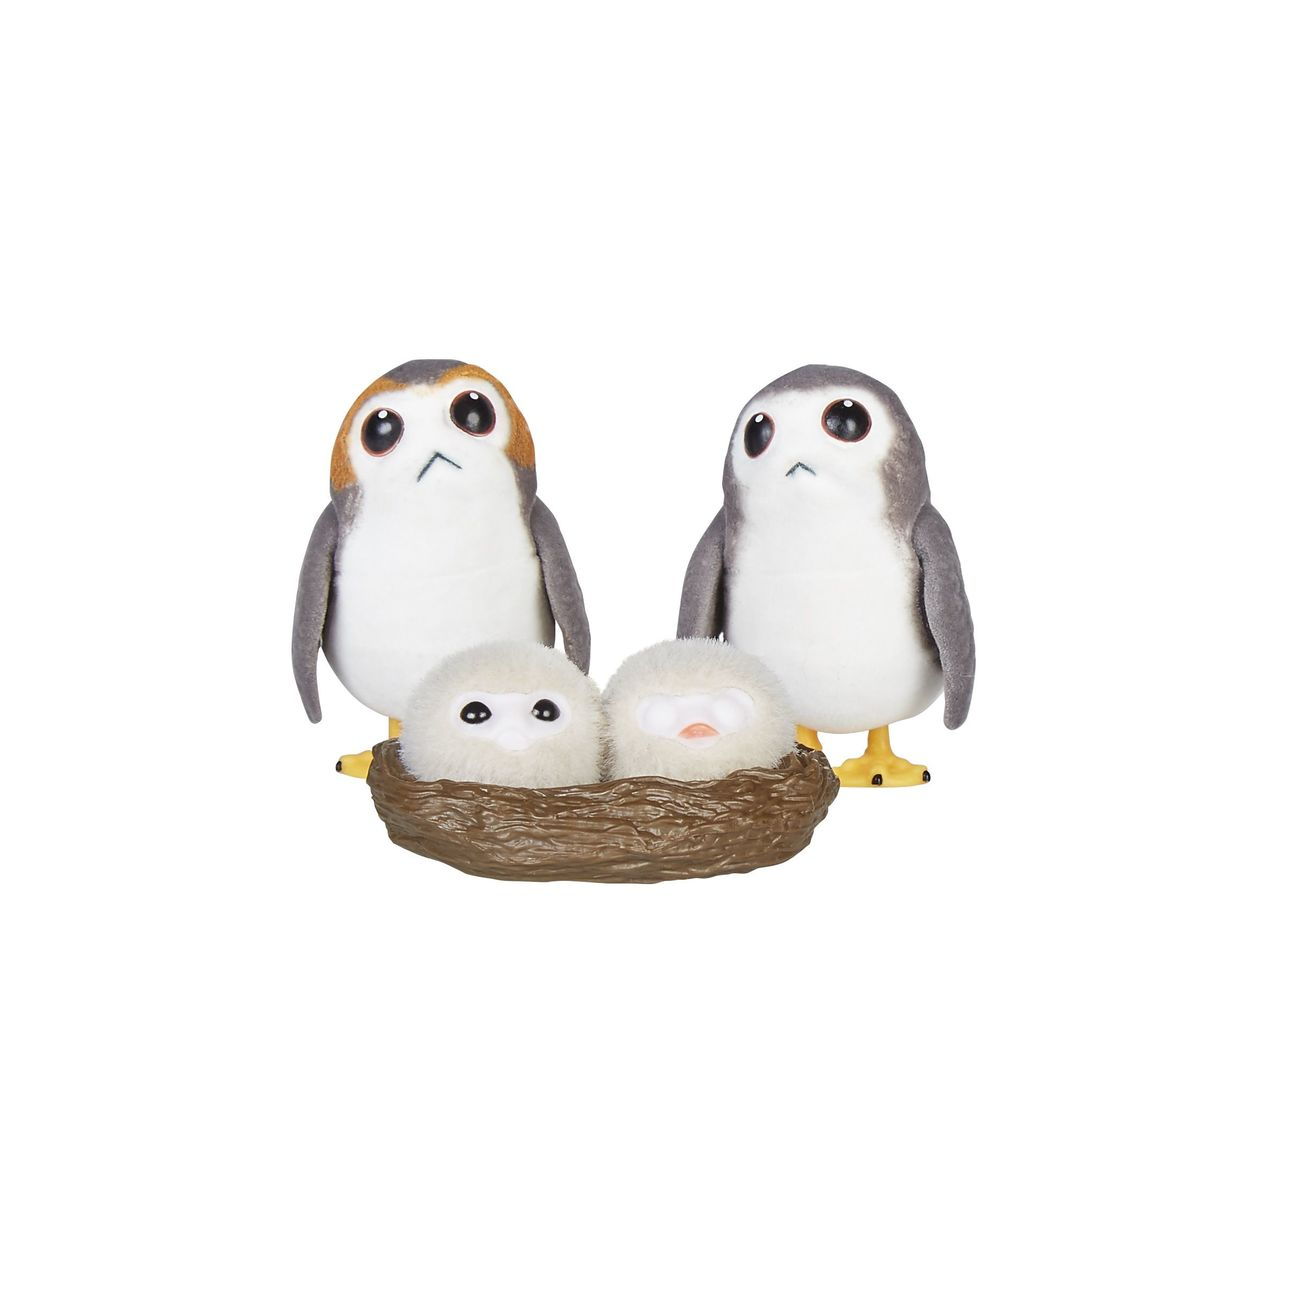 STAR WARS FORCES OF DESTINY CHEWBACCA AND PORGS - oop1